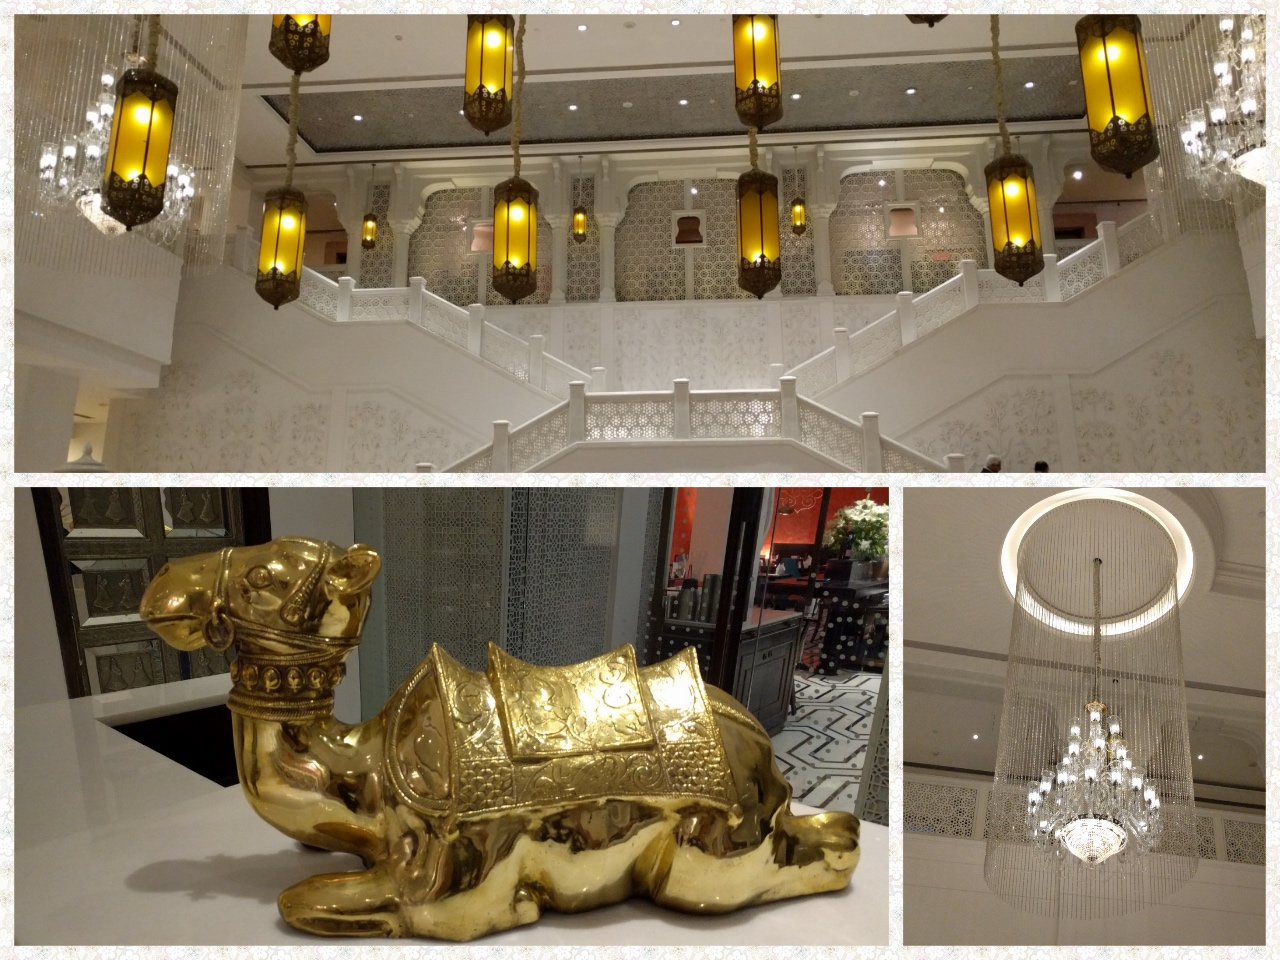 The Lobby, Chandeleirs and a Golden Camel